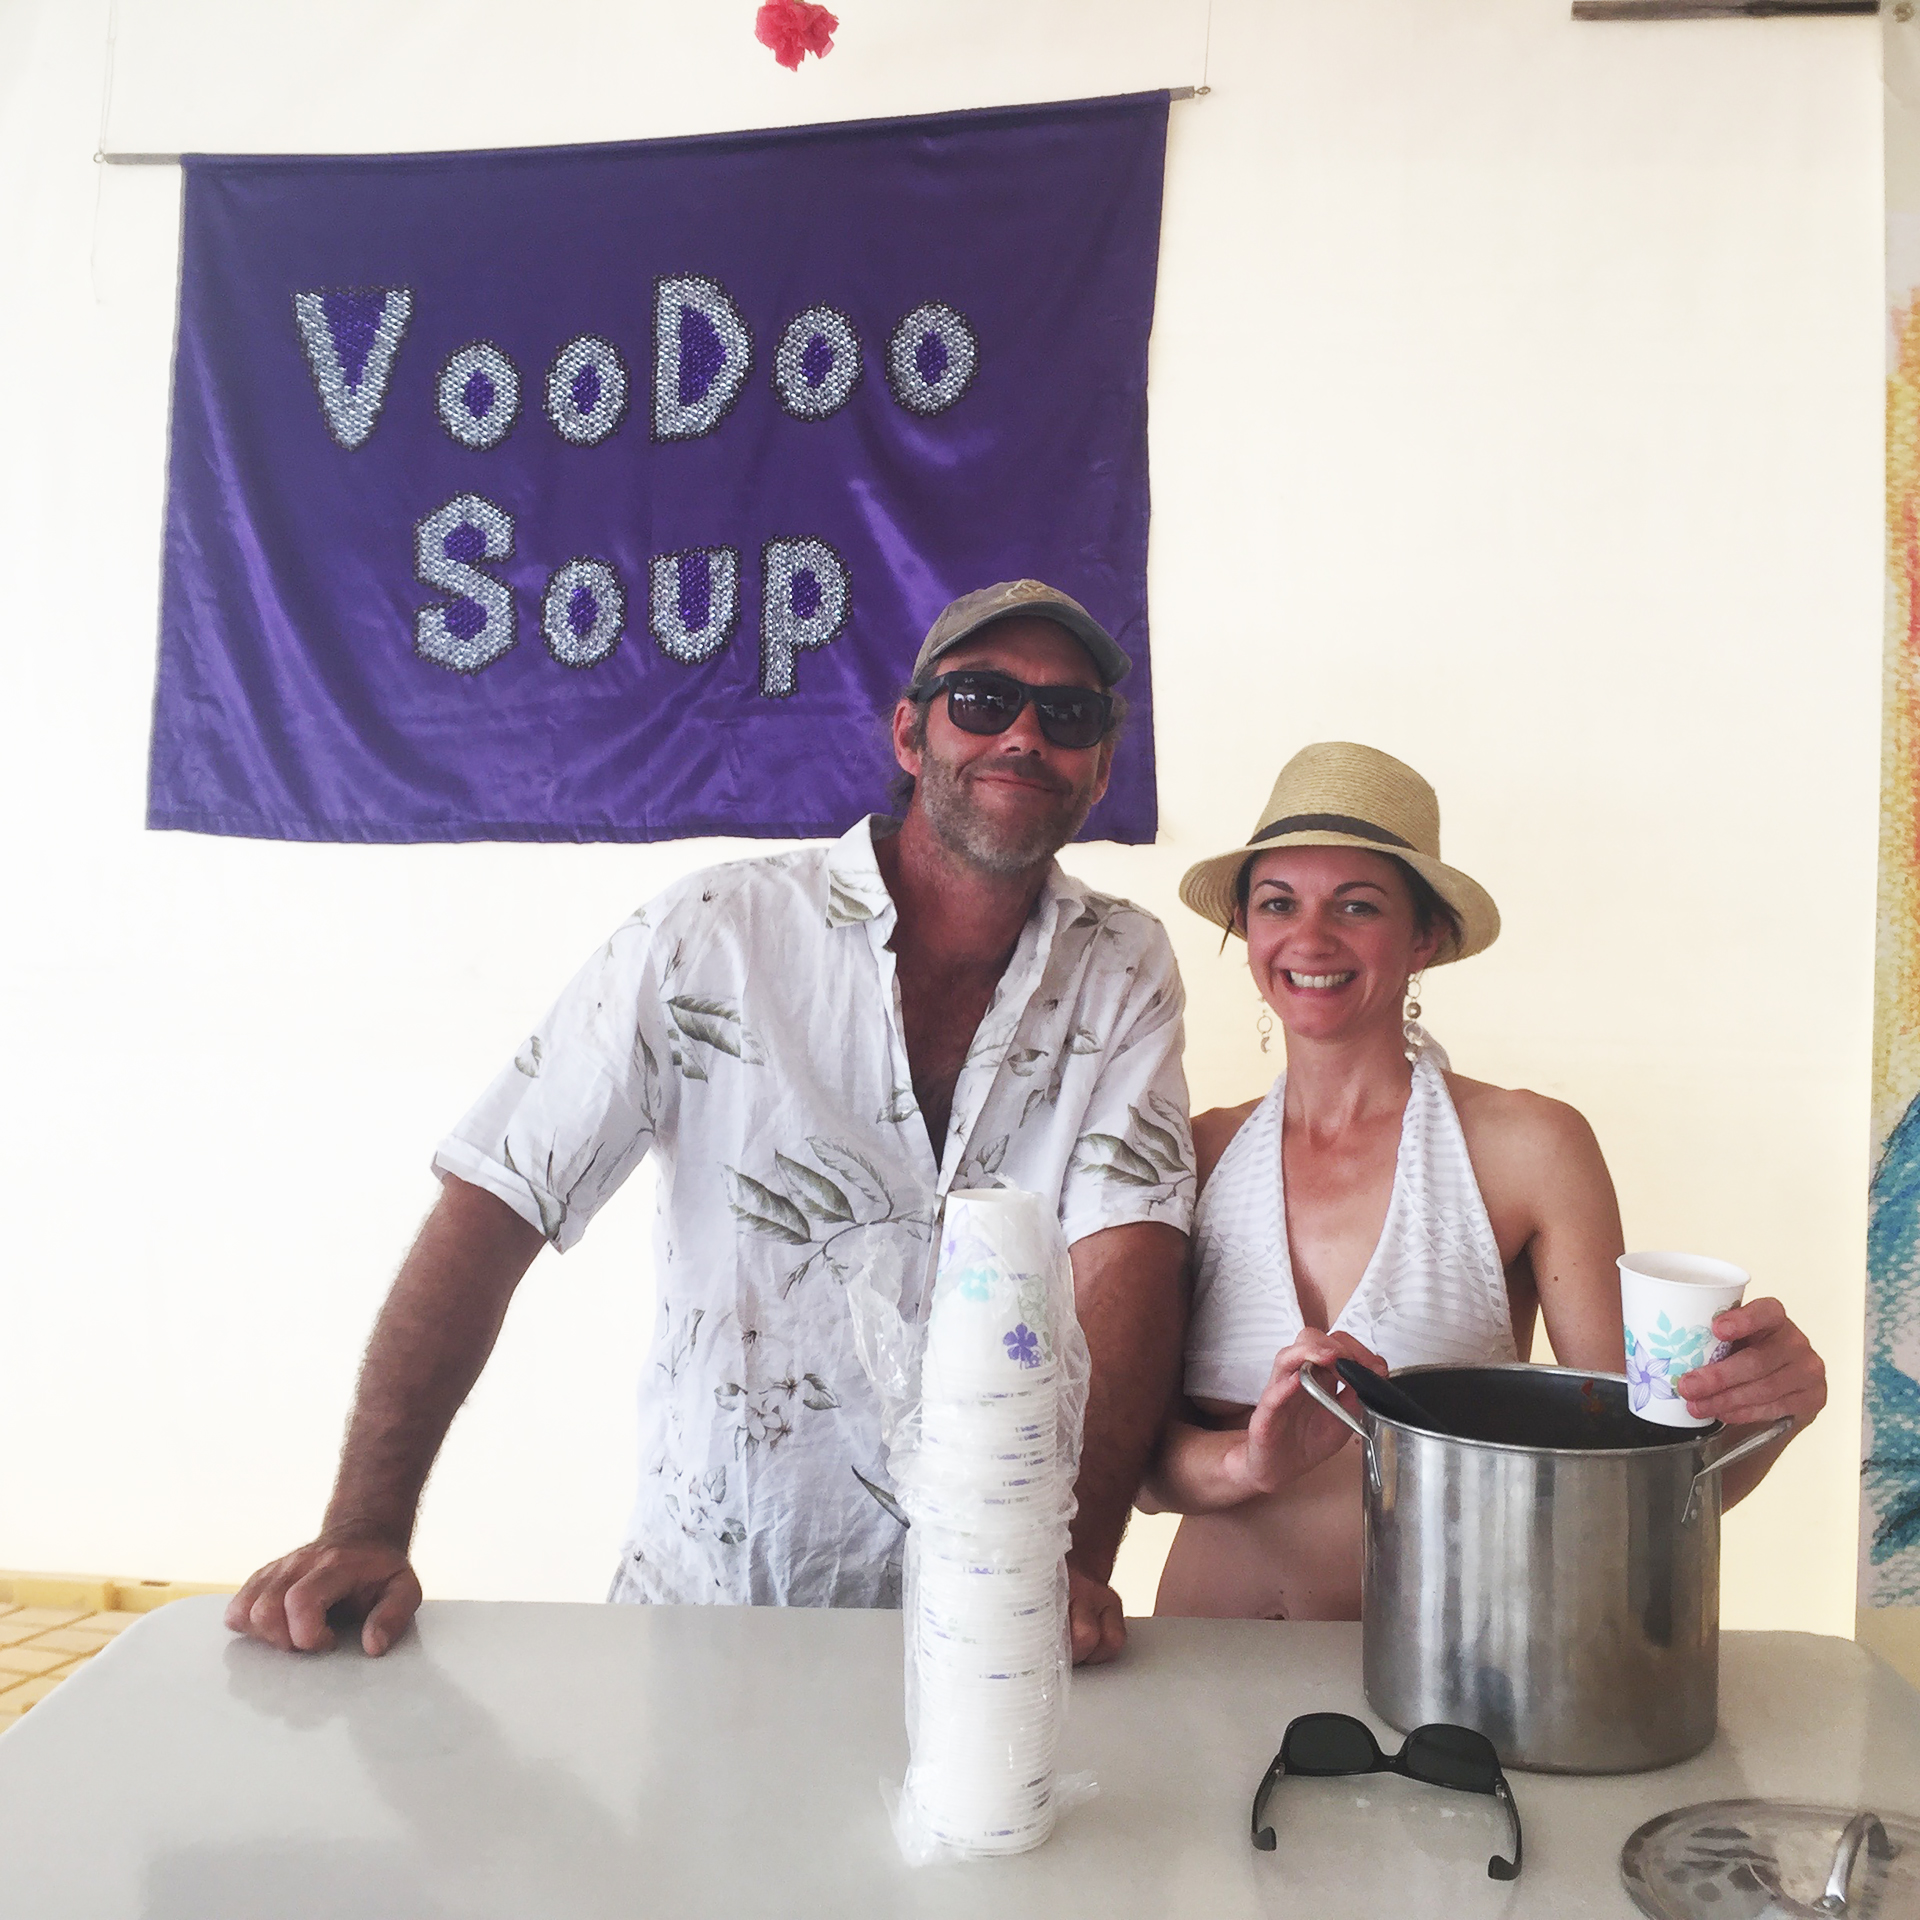 VooDoo Soup Camp serving up some tomato-lime gazpacho.